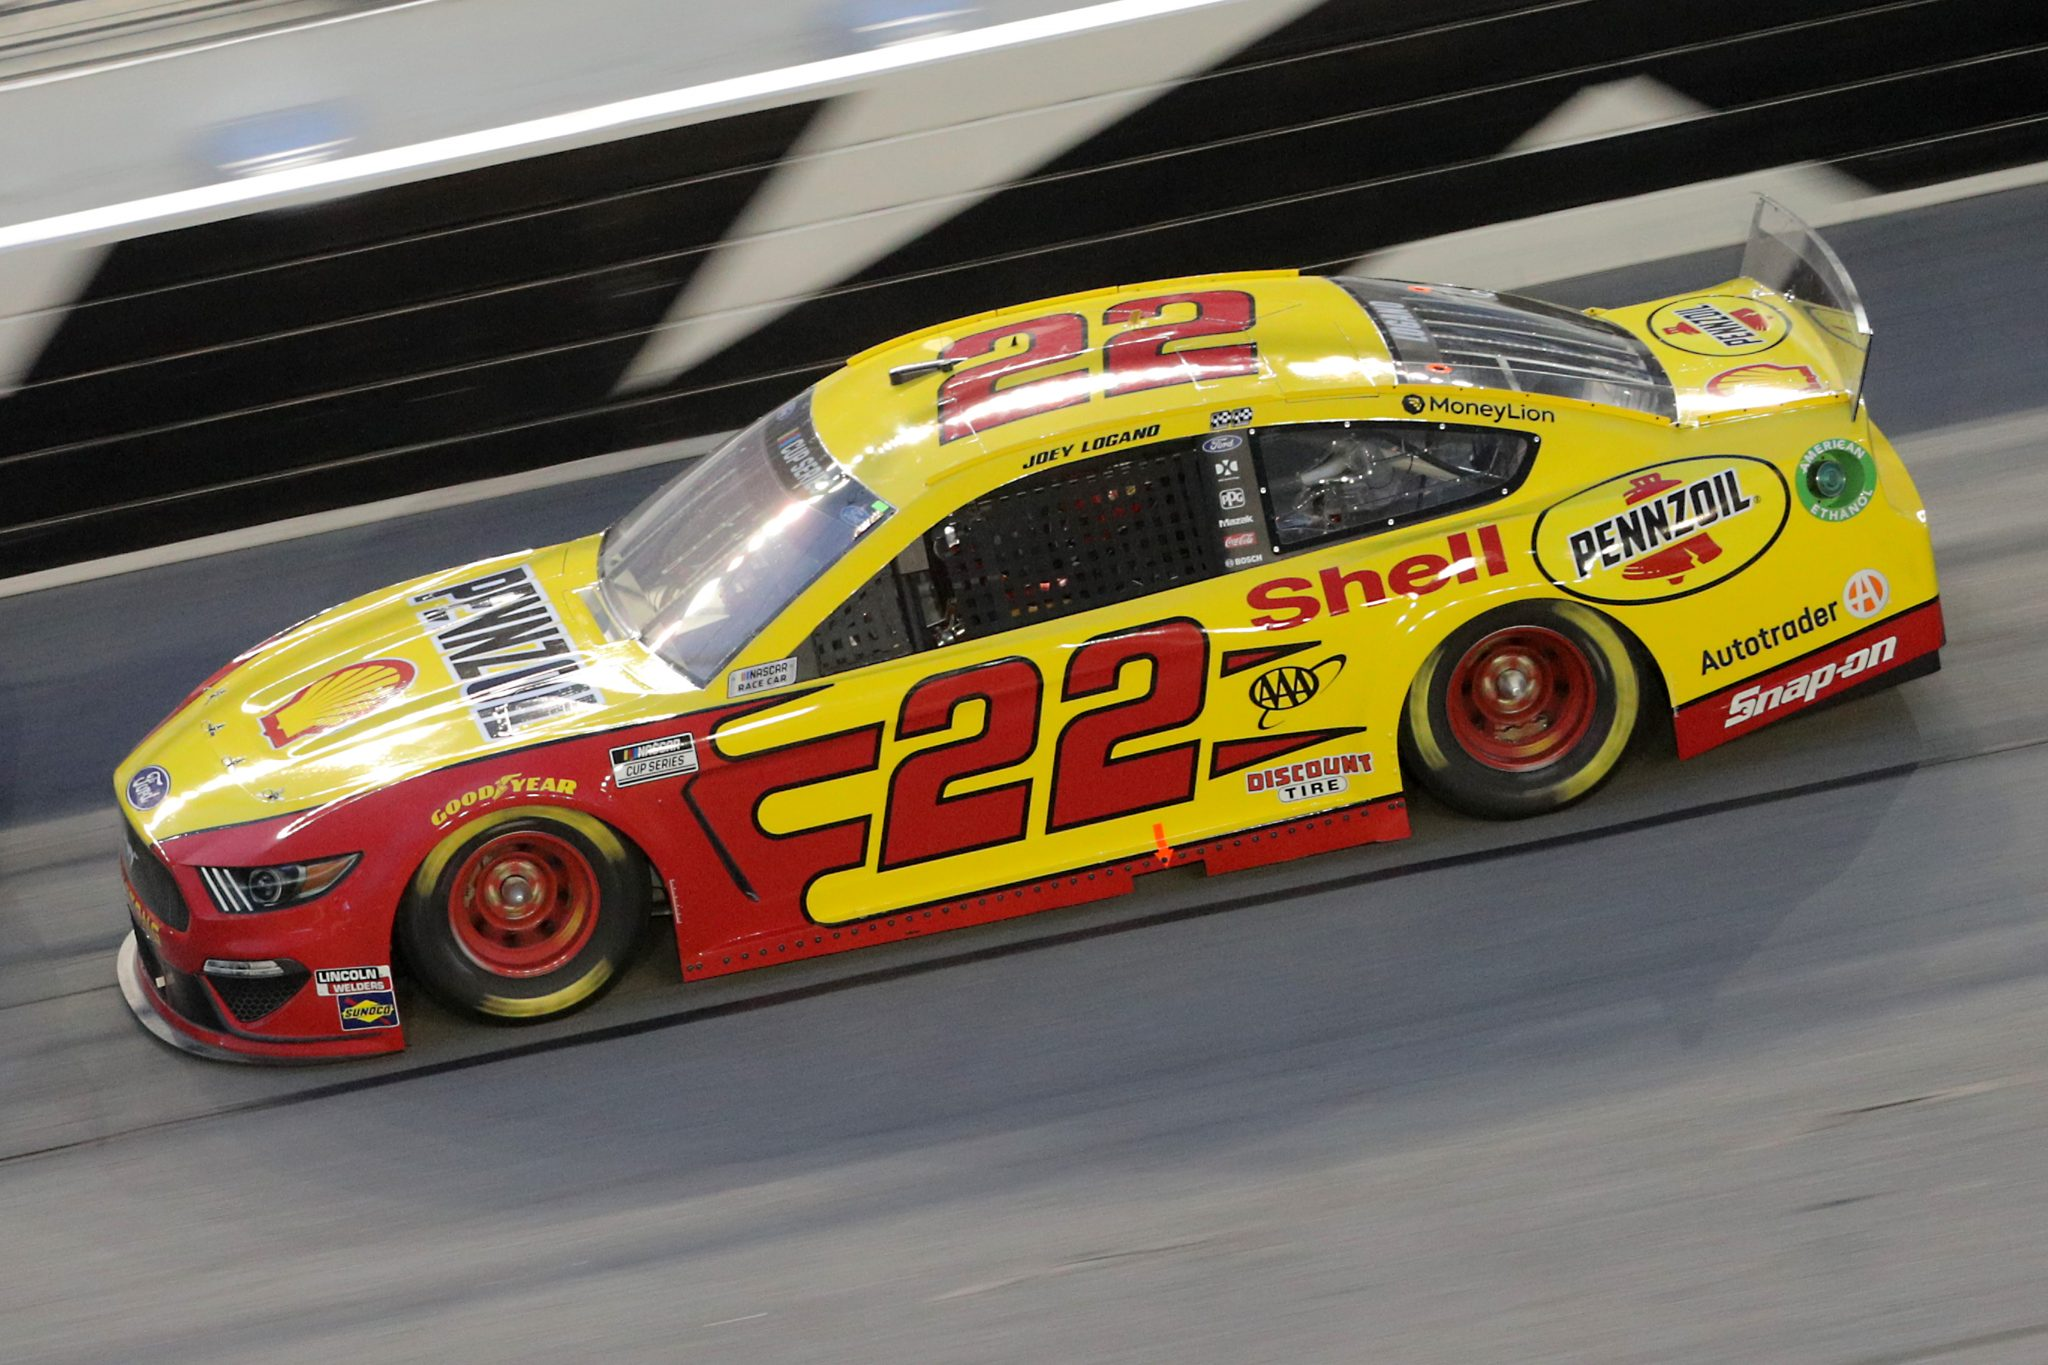 DAYTONA BEACH, FLORIDA - AUGUST 29: Joey Logano, driver of the #22 Shell Pennzoil Ford, drives during the NASCAR Cup Series Coke Zero Sugar 400 at Daytona International Speedway on August 29, 2020 in Daytona Beach, Florida. (Photo by Chris Graythen/Getty Images) | Getty Images